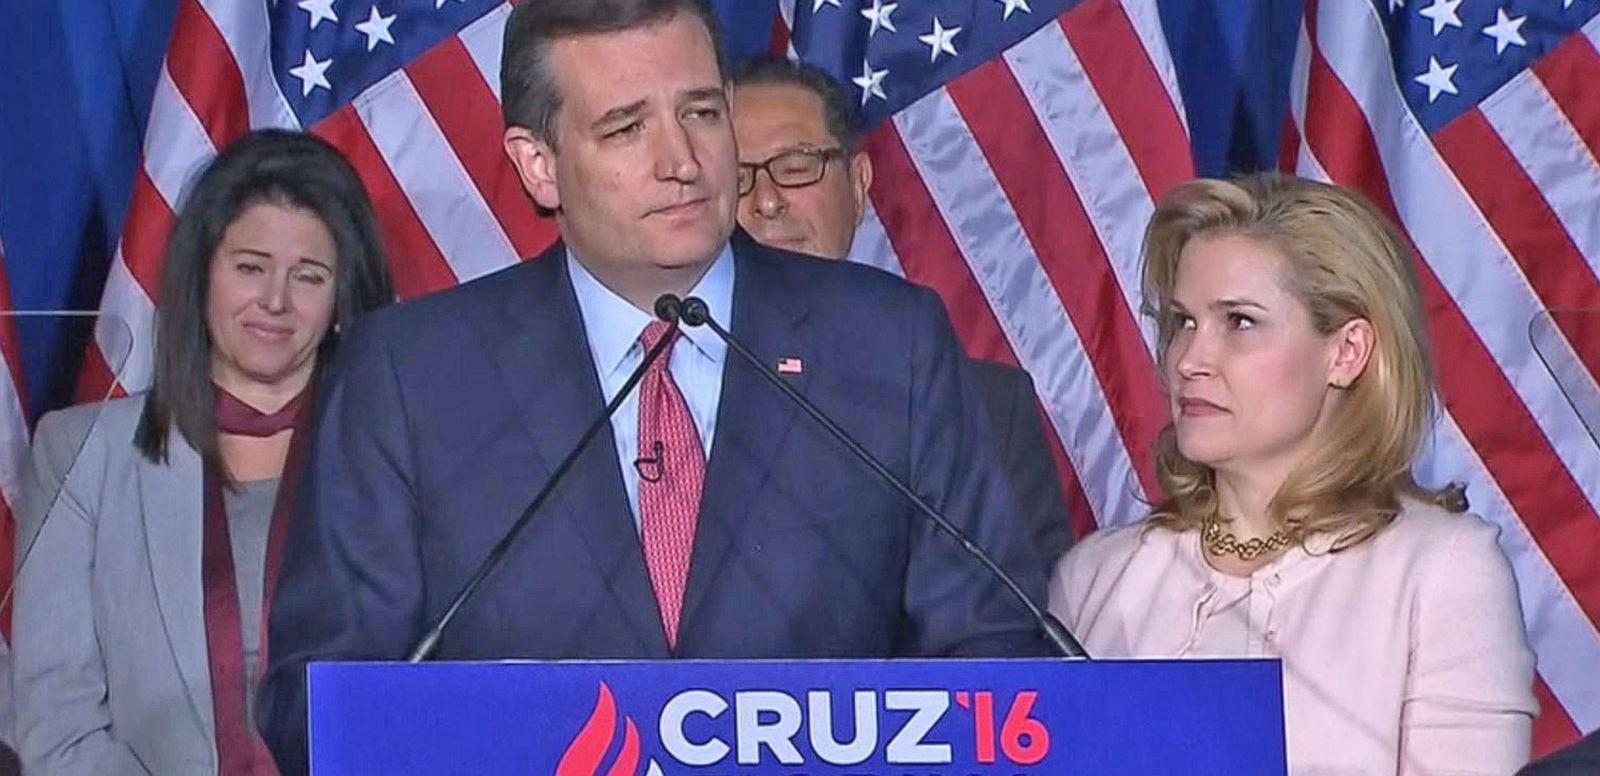 VIDEO: Ted Cruz Suspends Presidential Campaign